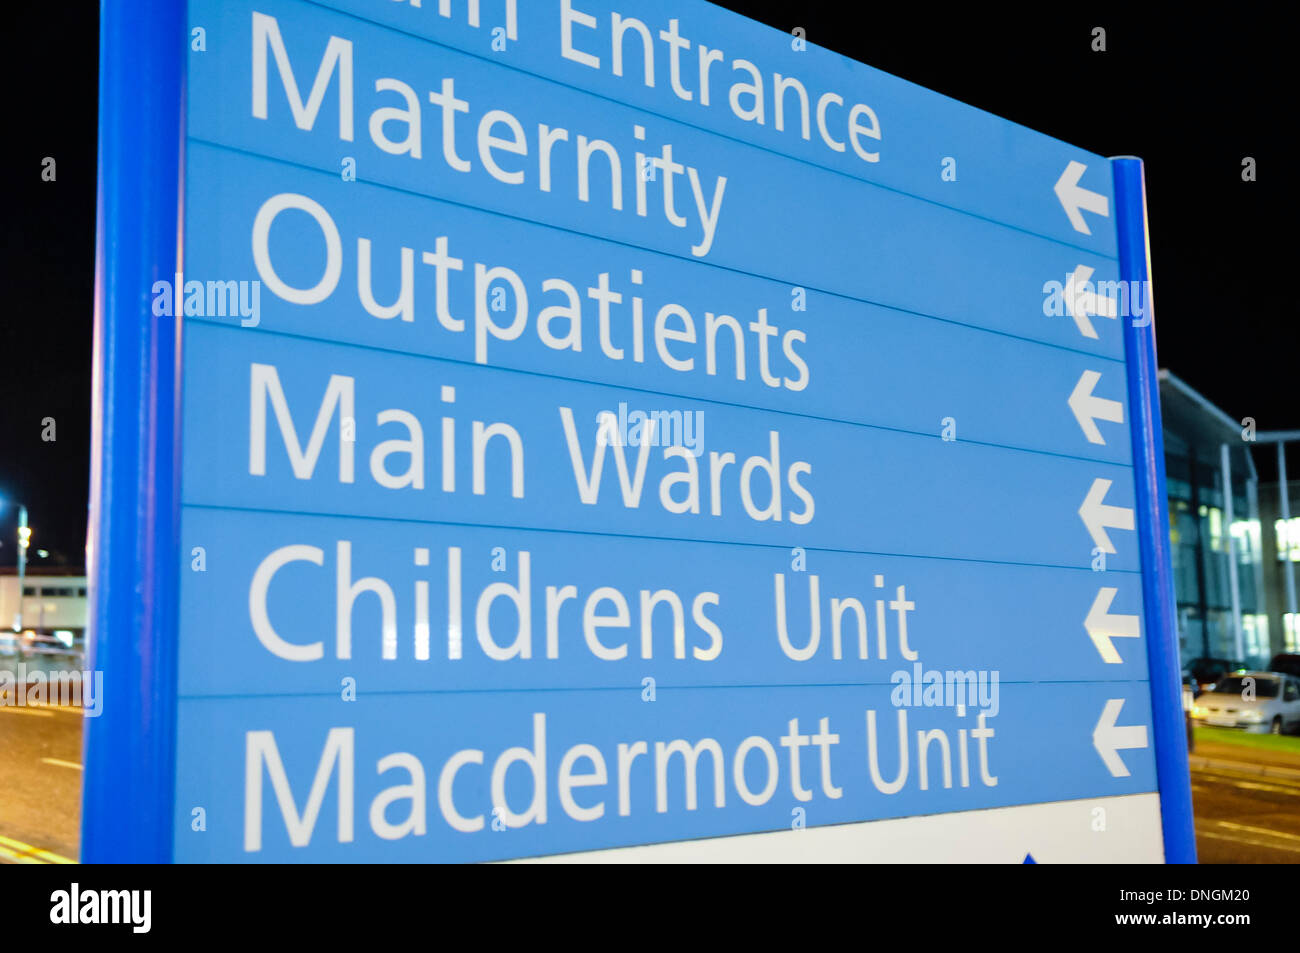 Sign at a hospital for maternity, outpatients, main wards, childrens unit and the Macdermott Unit. - Stock Image